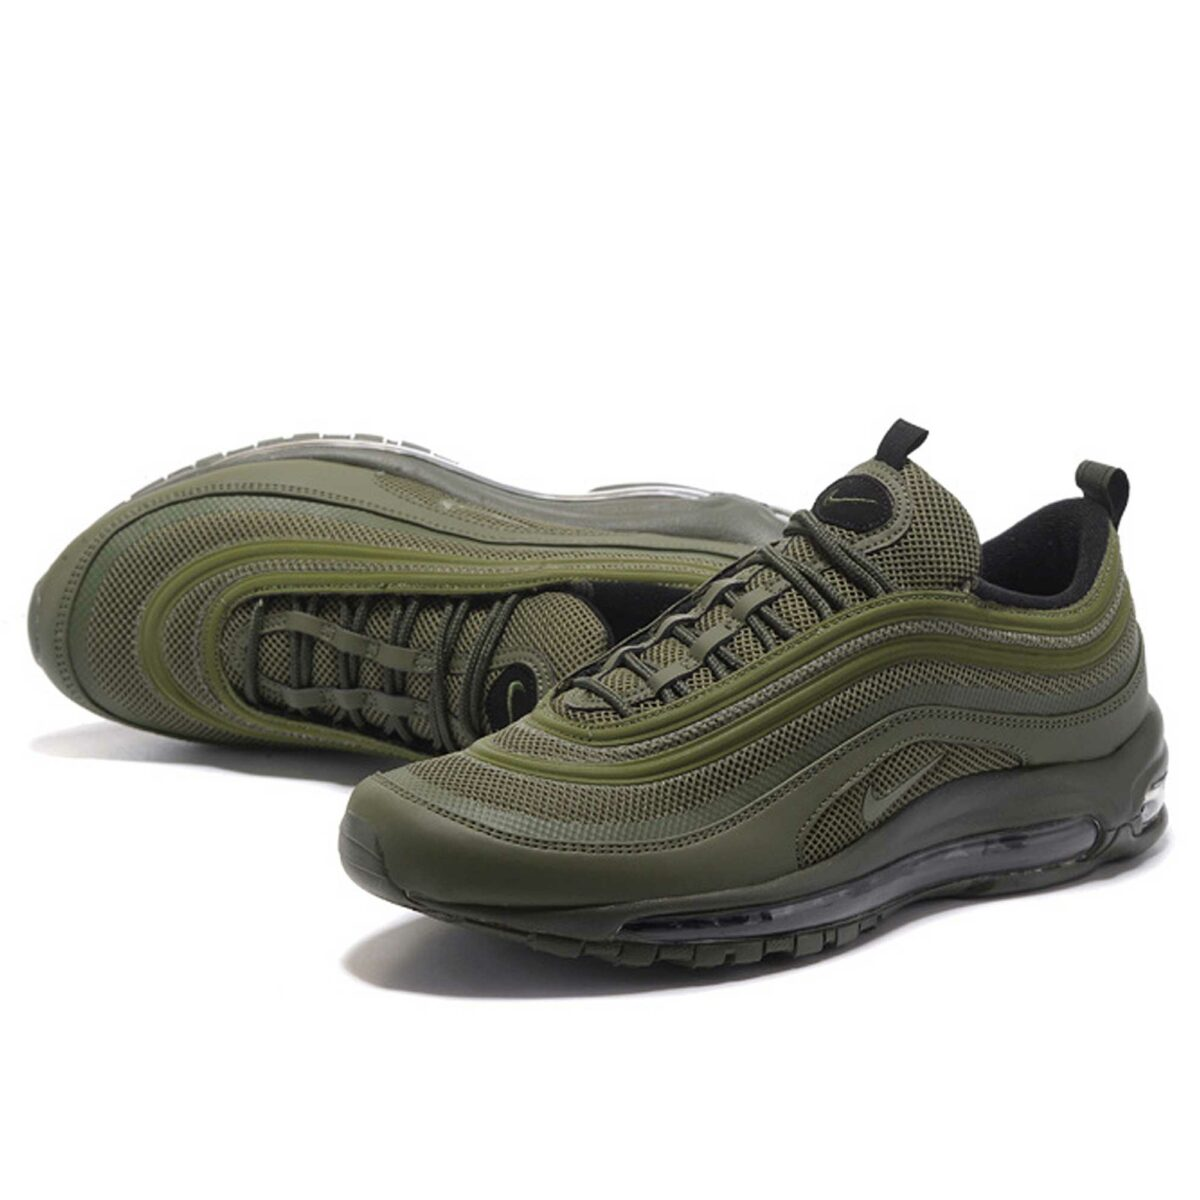 nike air max 97 playstation green 884421_007 купить